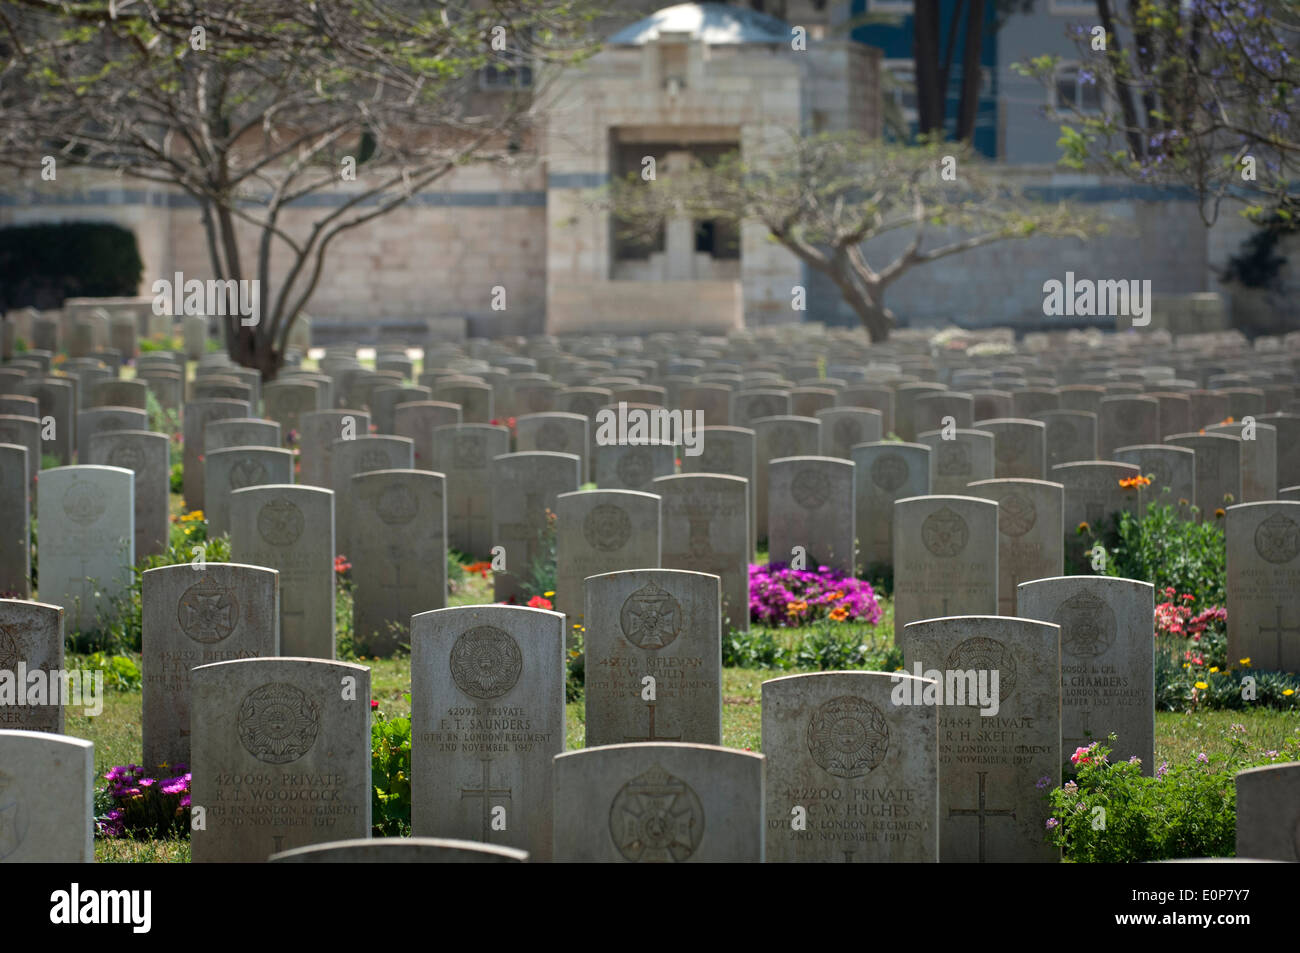 The graves of commonwealth soldiers who died in the first and second world war buried at Gaza War Cemetery,Gaza City. - Stock Image